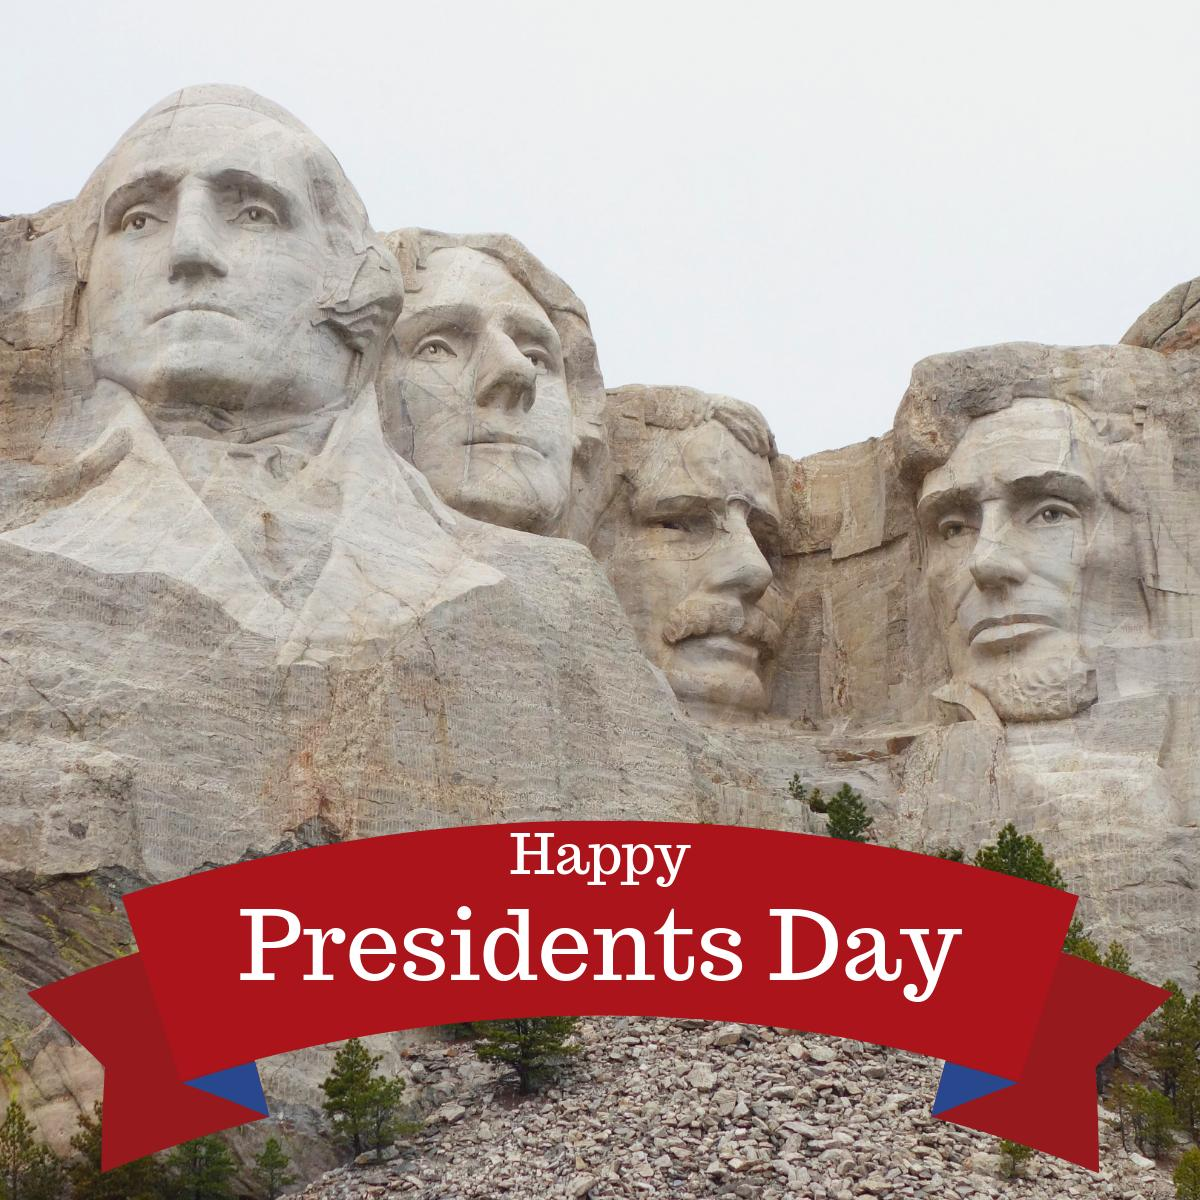 RT @GovAbbott: Happy Presidents Day! https://t.co/tYdVEadzl7